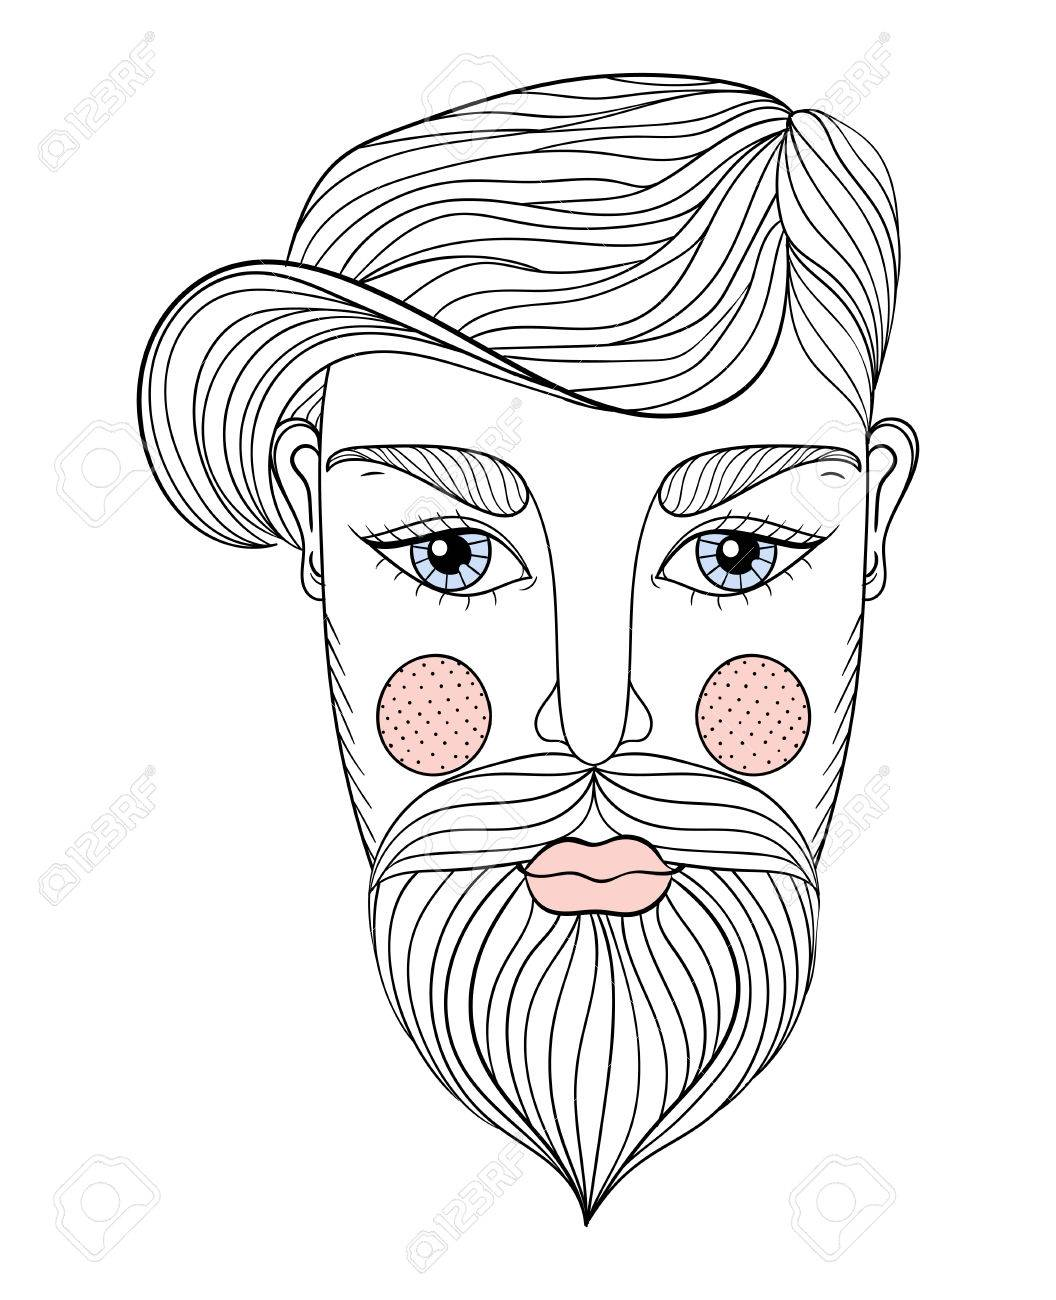 Vector vector portrait of man face with mustache and beard for adult coloring pages tattoo art ethnic patterned t shirt print